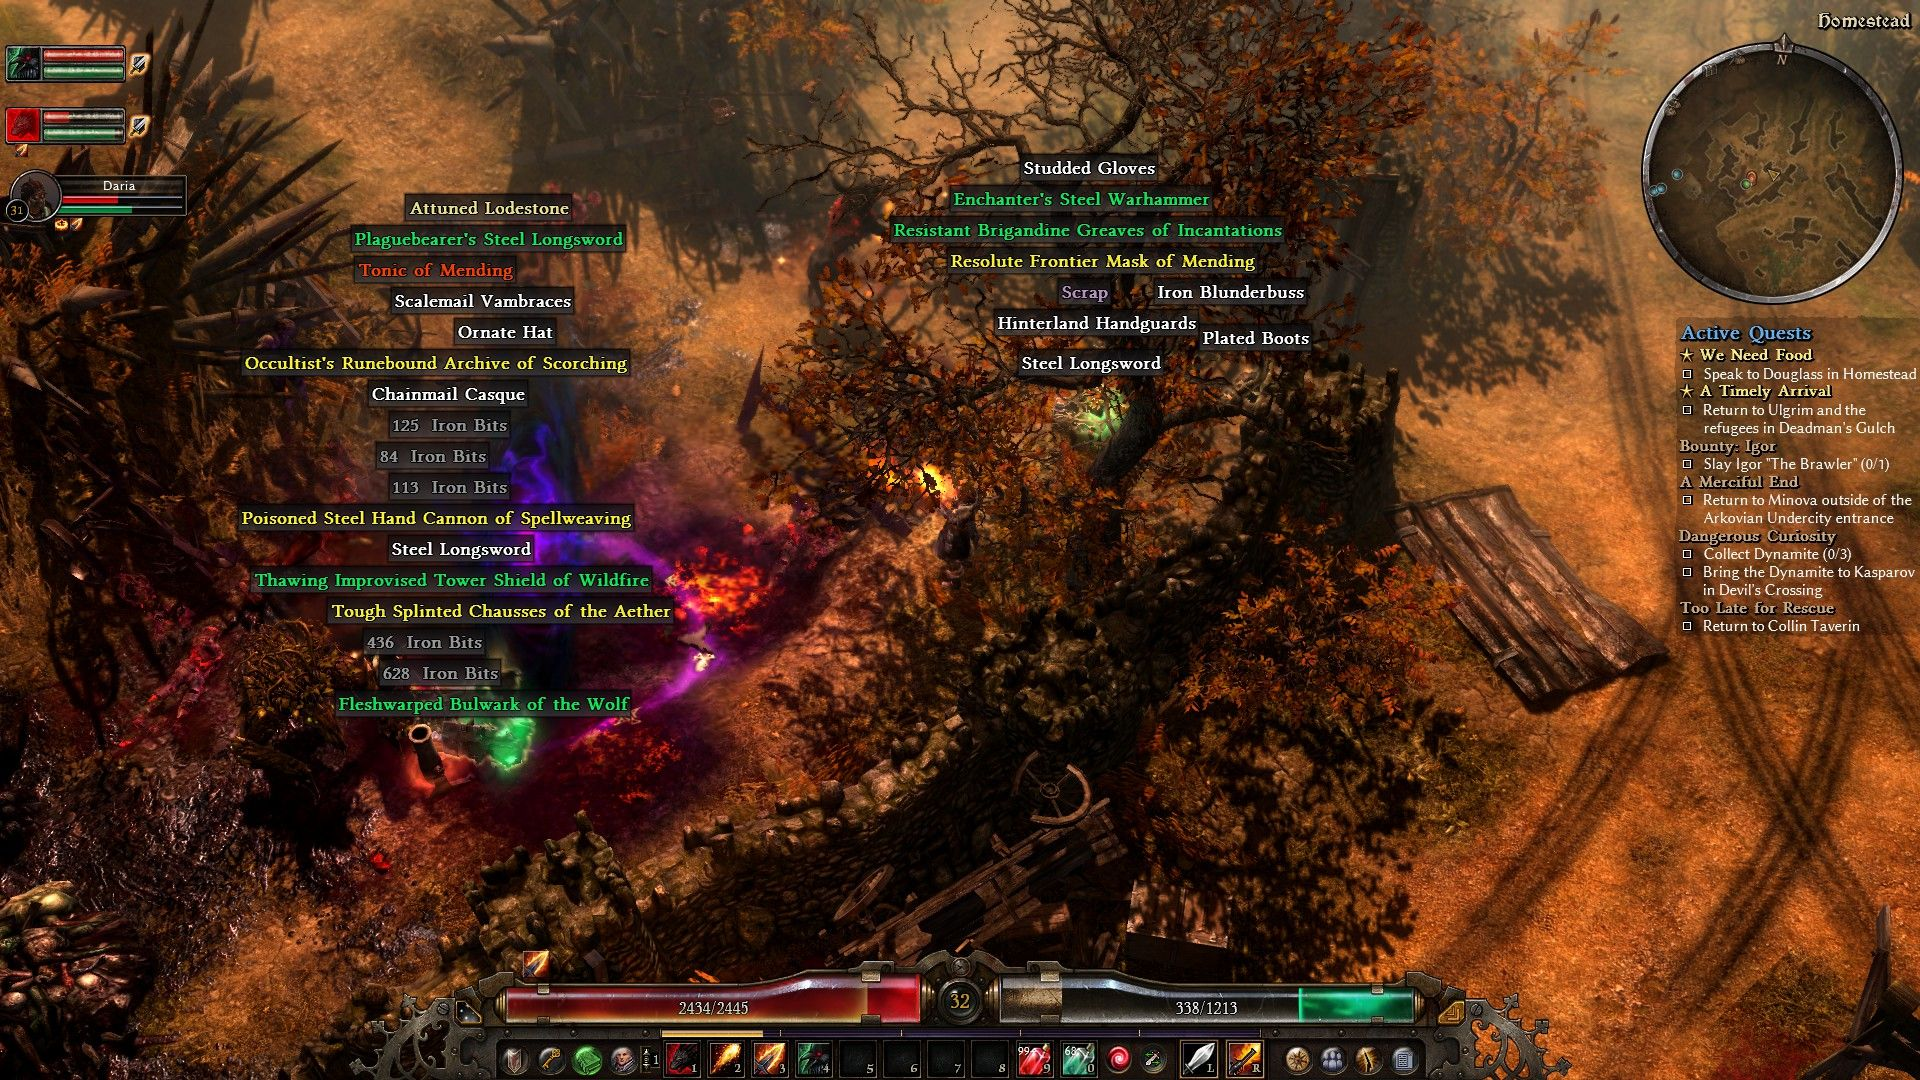 Thoughts Grim Dawn The Scientific Gamer